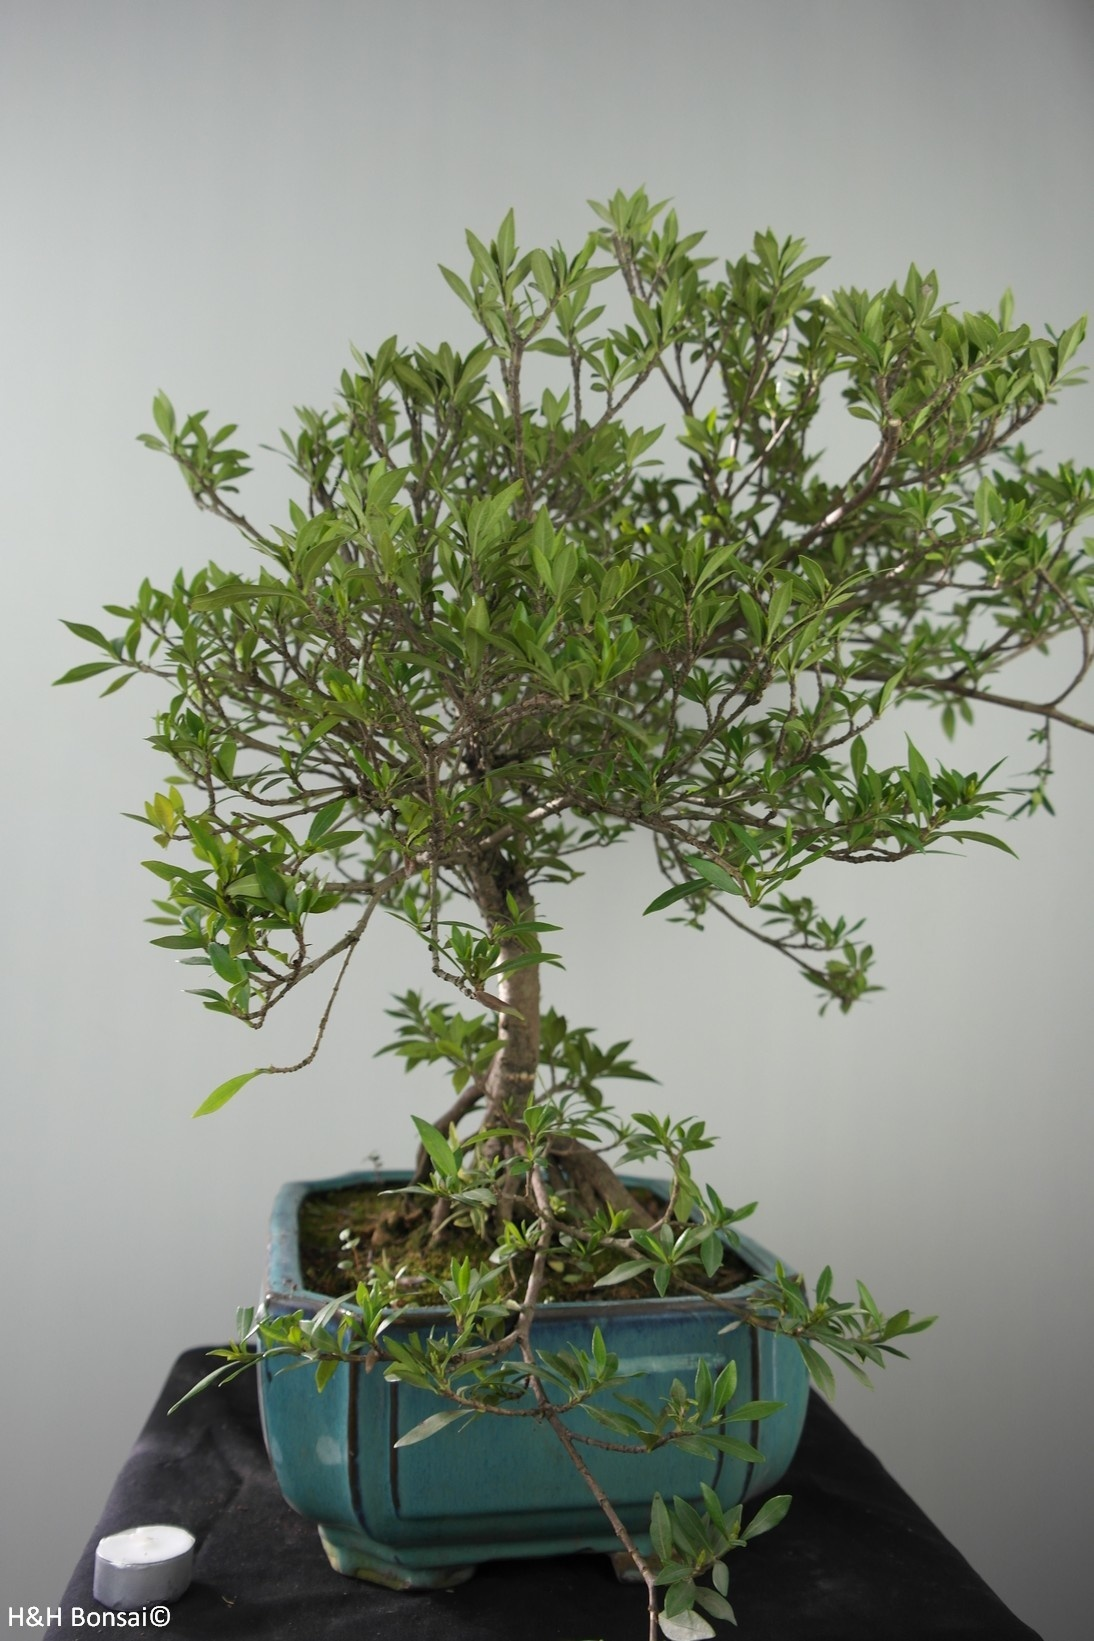 Bonsai Gardenia jasminoides, no. 7750